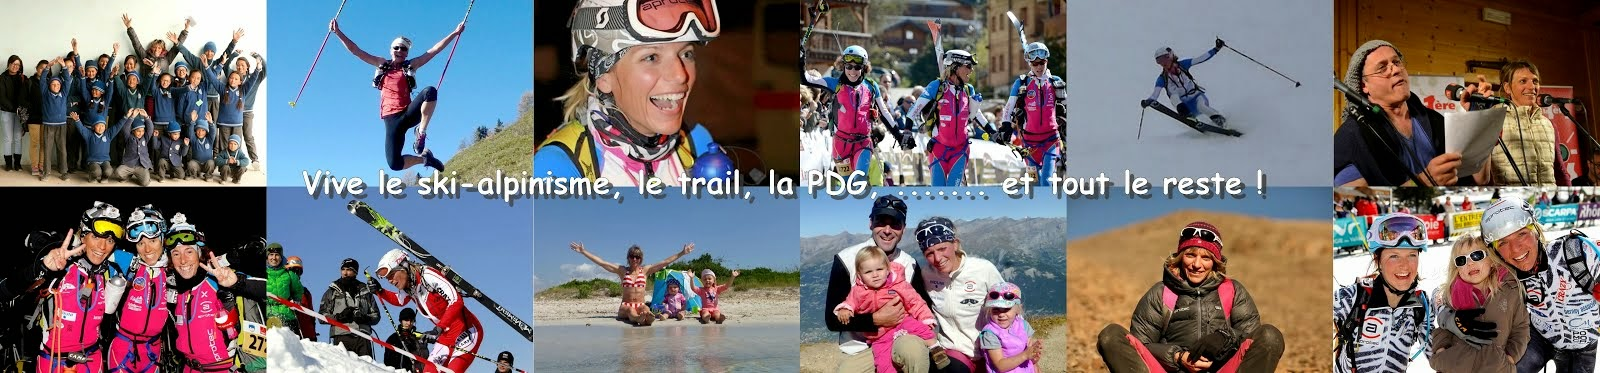 Vive le Ski-alpinisme, la PDG, le Trail et ....tout le reste